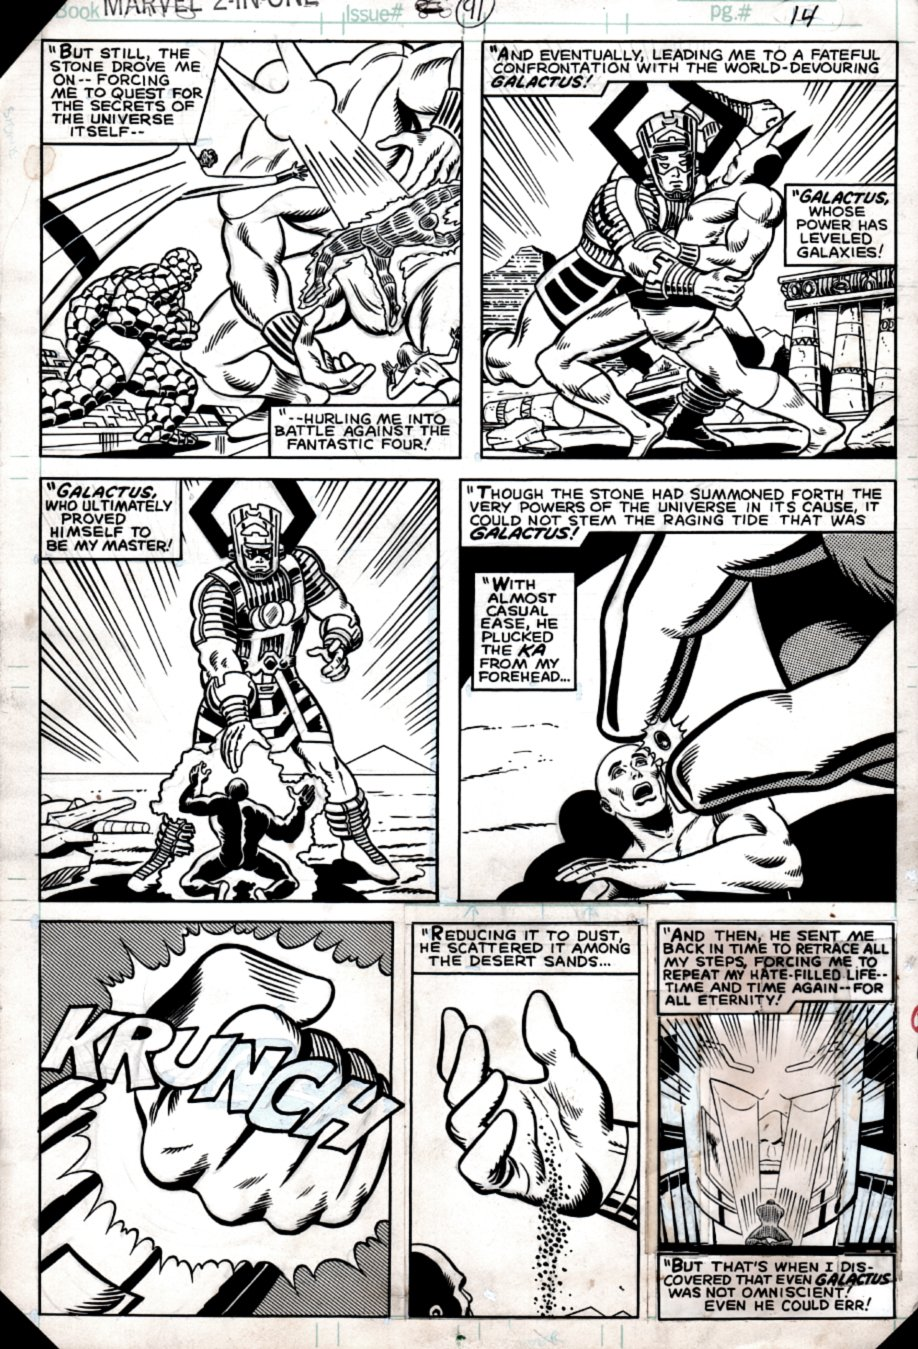 Marvel Two-in-One #91 p 14 (Galactus Vs Sphinx All out Battle!) 1982